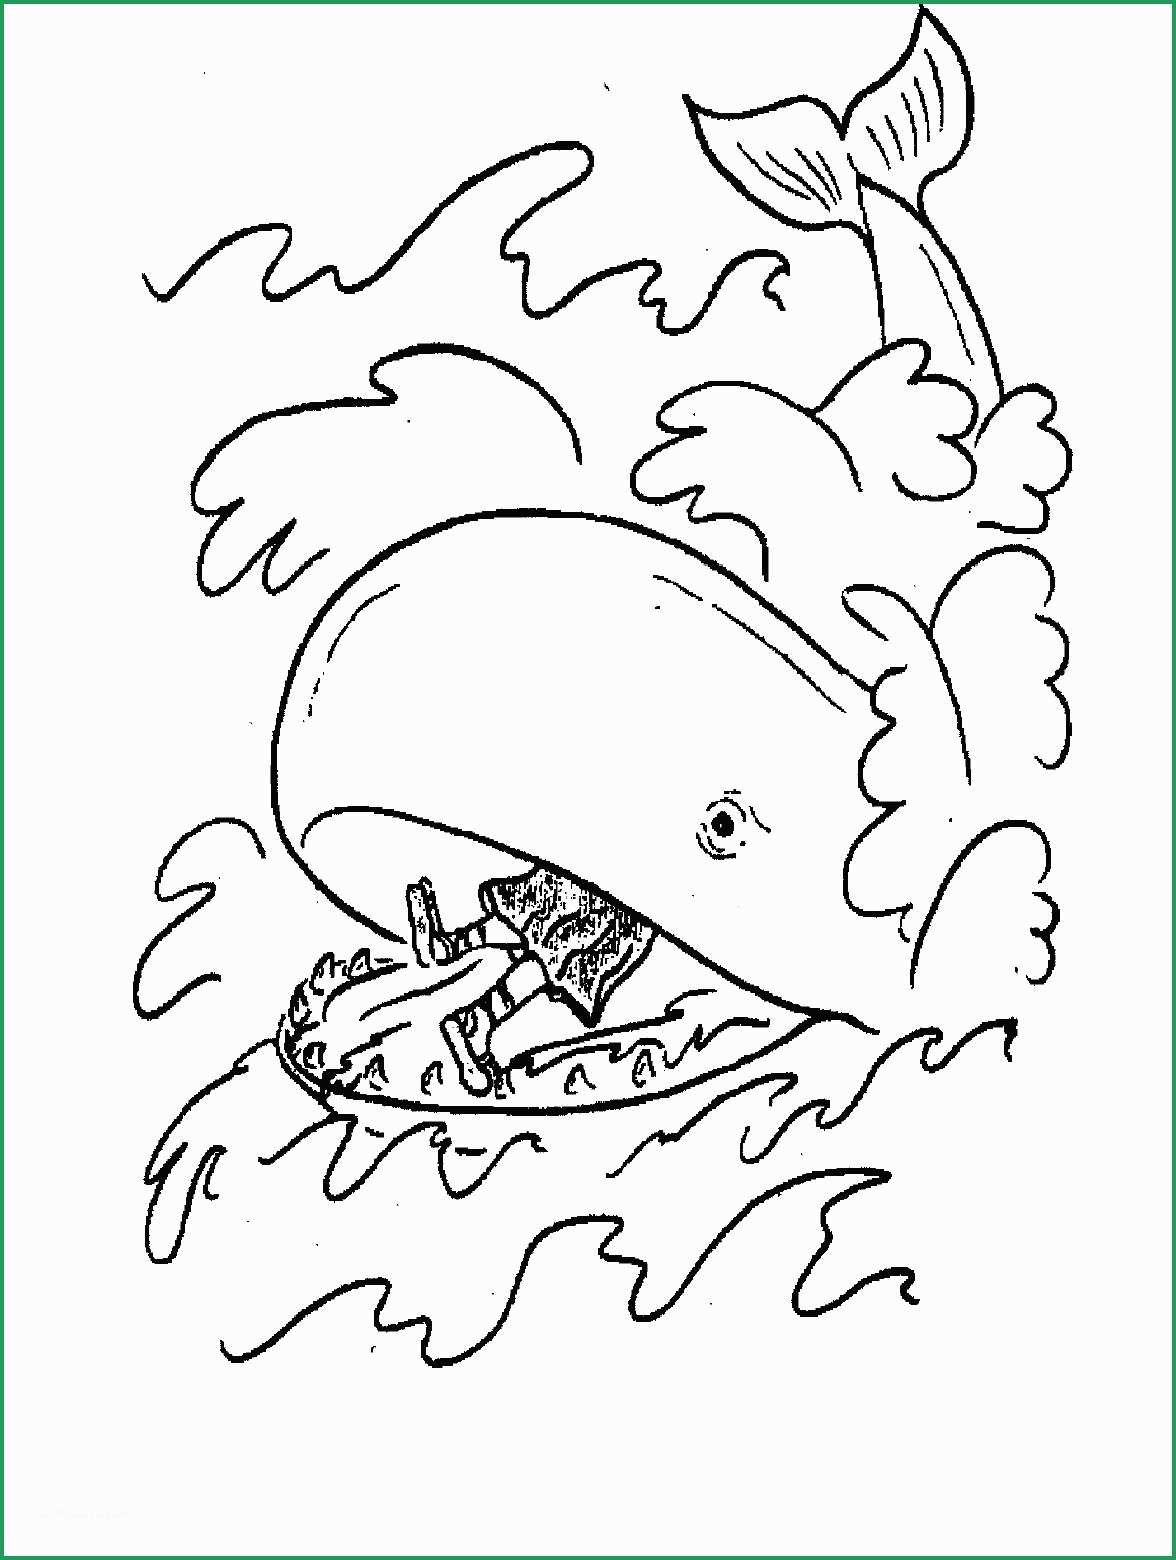 Bible Story Coloring Pages Free Bible Story Coloring Pages Awesome Free Printable Jonah And The